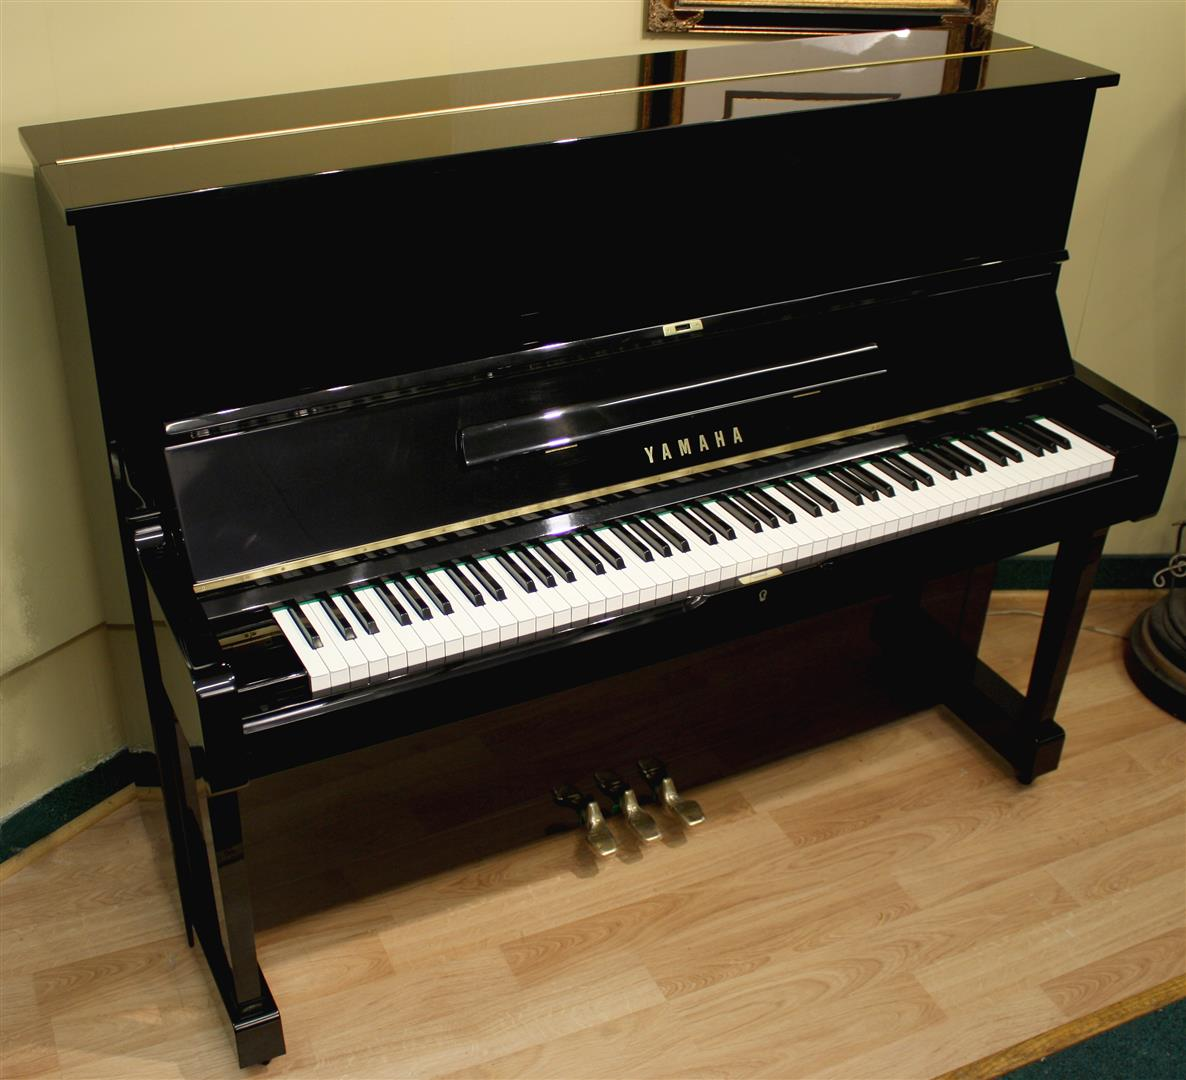 Four star reconditoned yamaha yamaha u1 upright piano 48 for Yamaha pianos nj